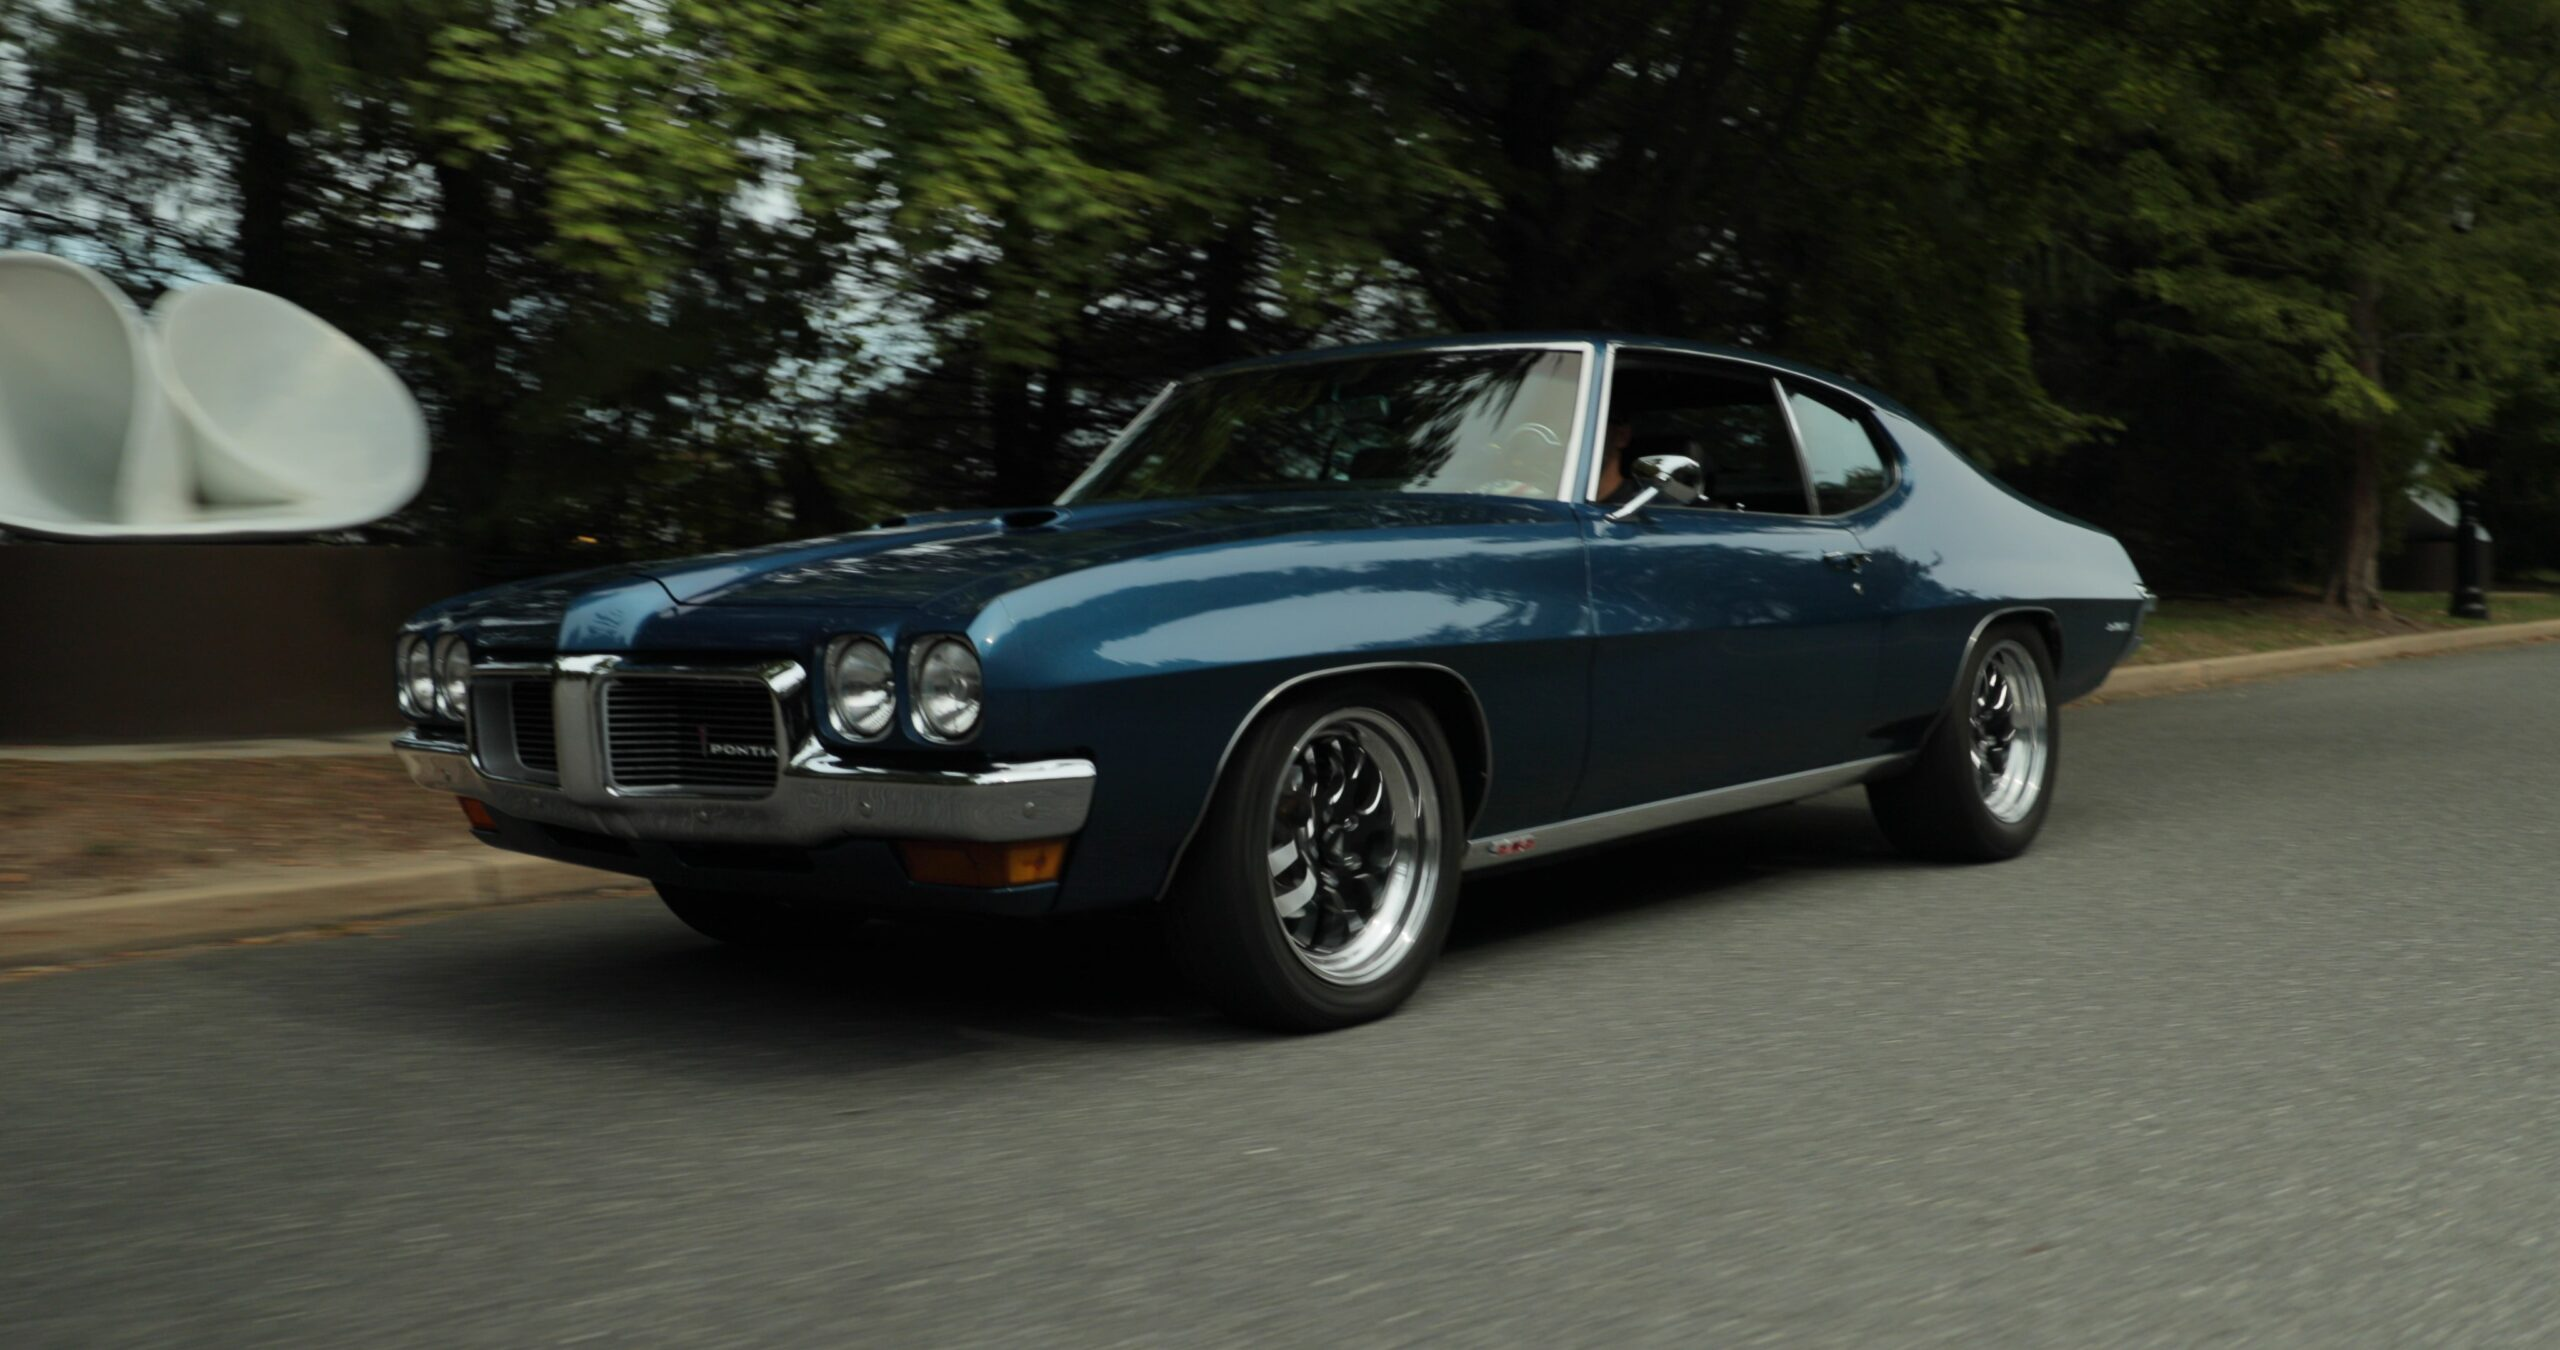 Mike Miller - Trenton NJ - 1970 Pontiac LeMans